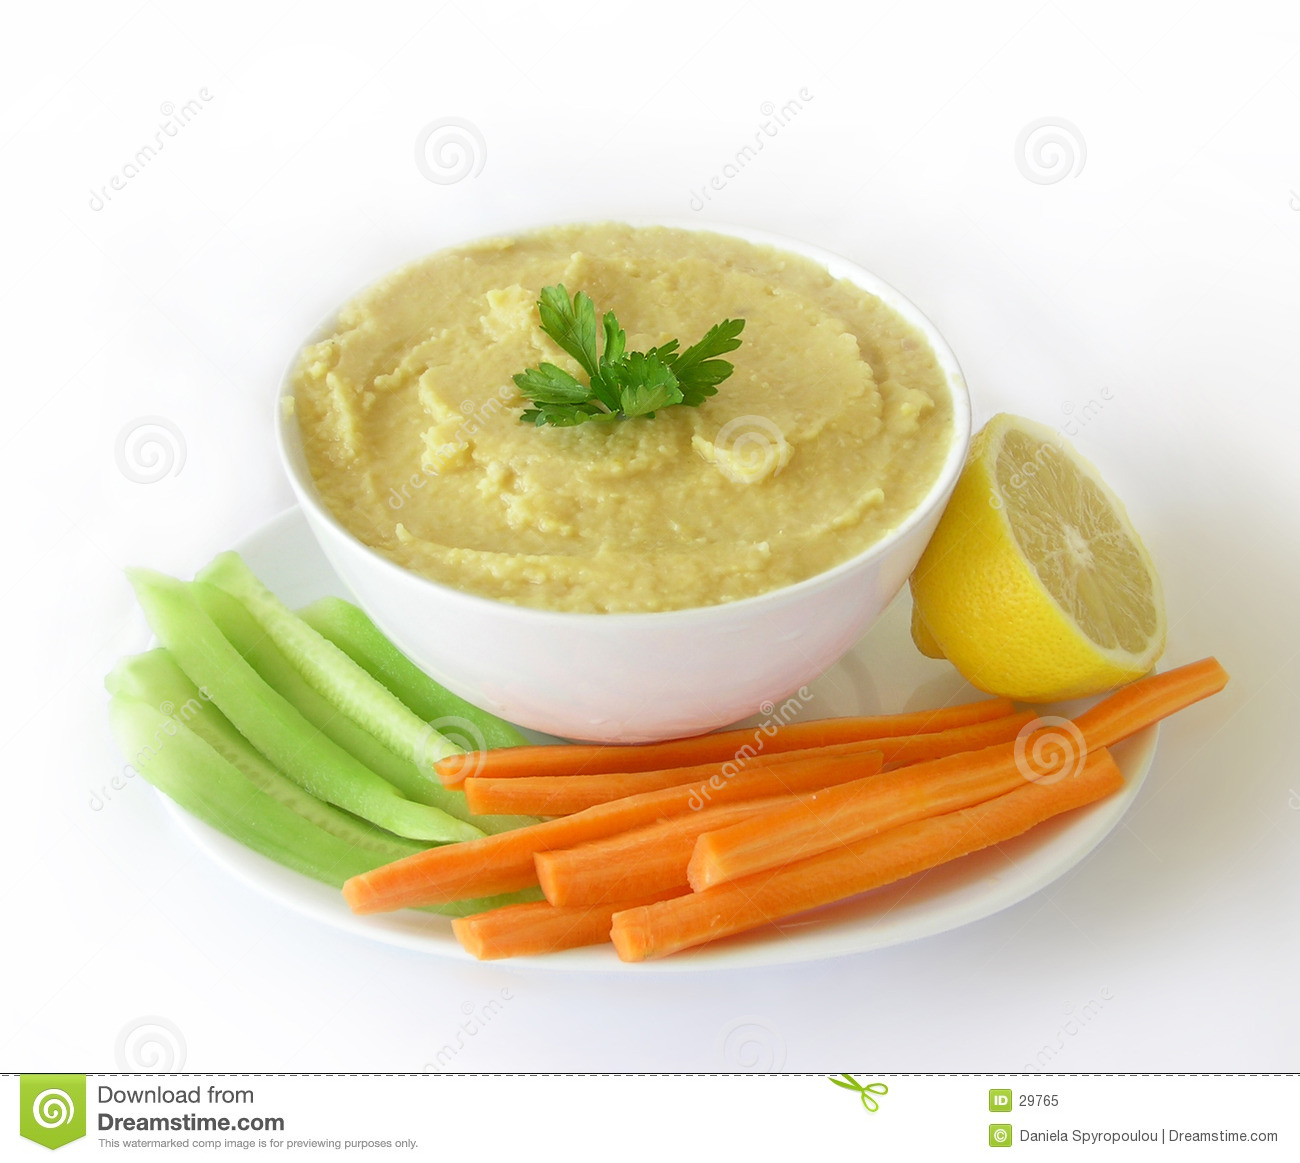 Download Hummus stock image. Image of middle, garbanzo, carrots, houmus - 29765